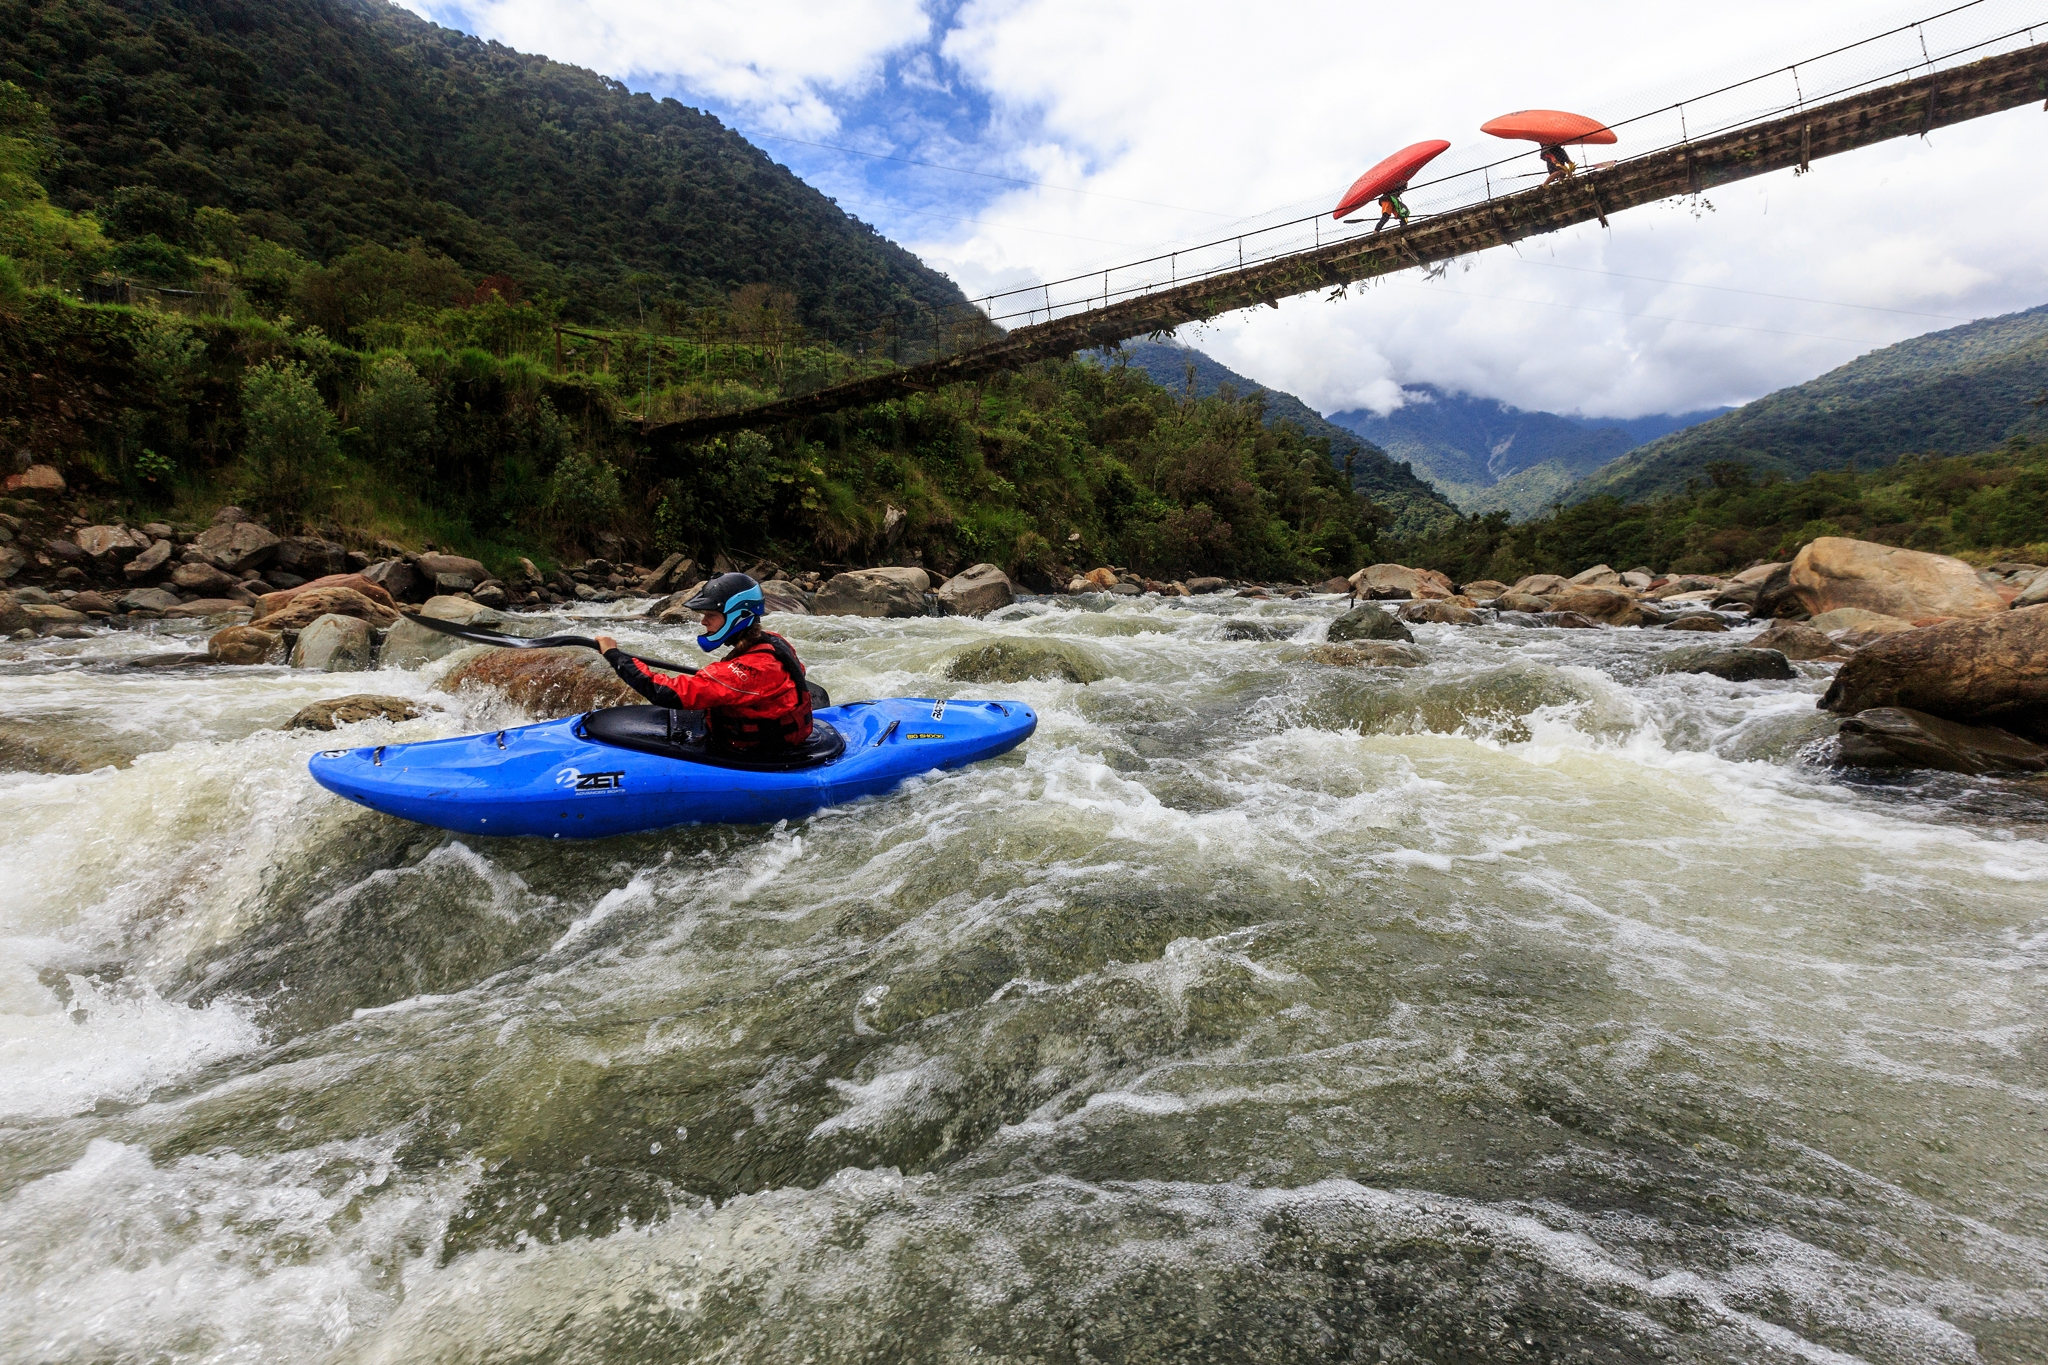 Custom guided trips - The best kayaking experience with the most professional local kayakers, have a unique experience and support our efforts to defend rivers in Ecuador. Your trip supports the ERI Ecuadorian River Institute.